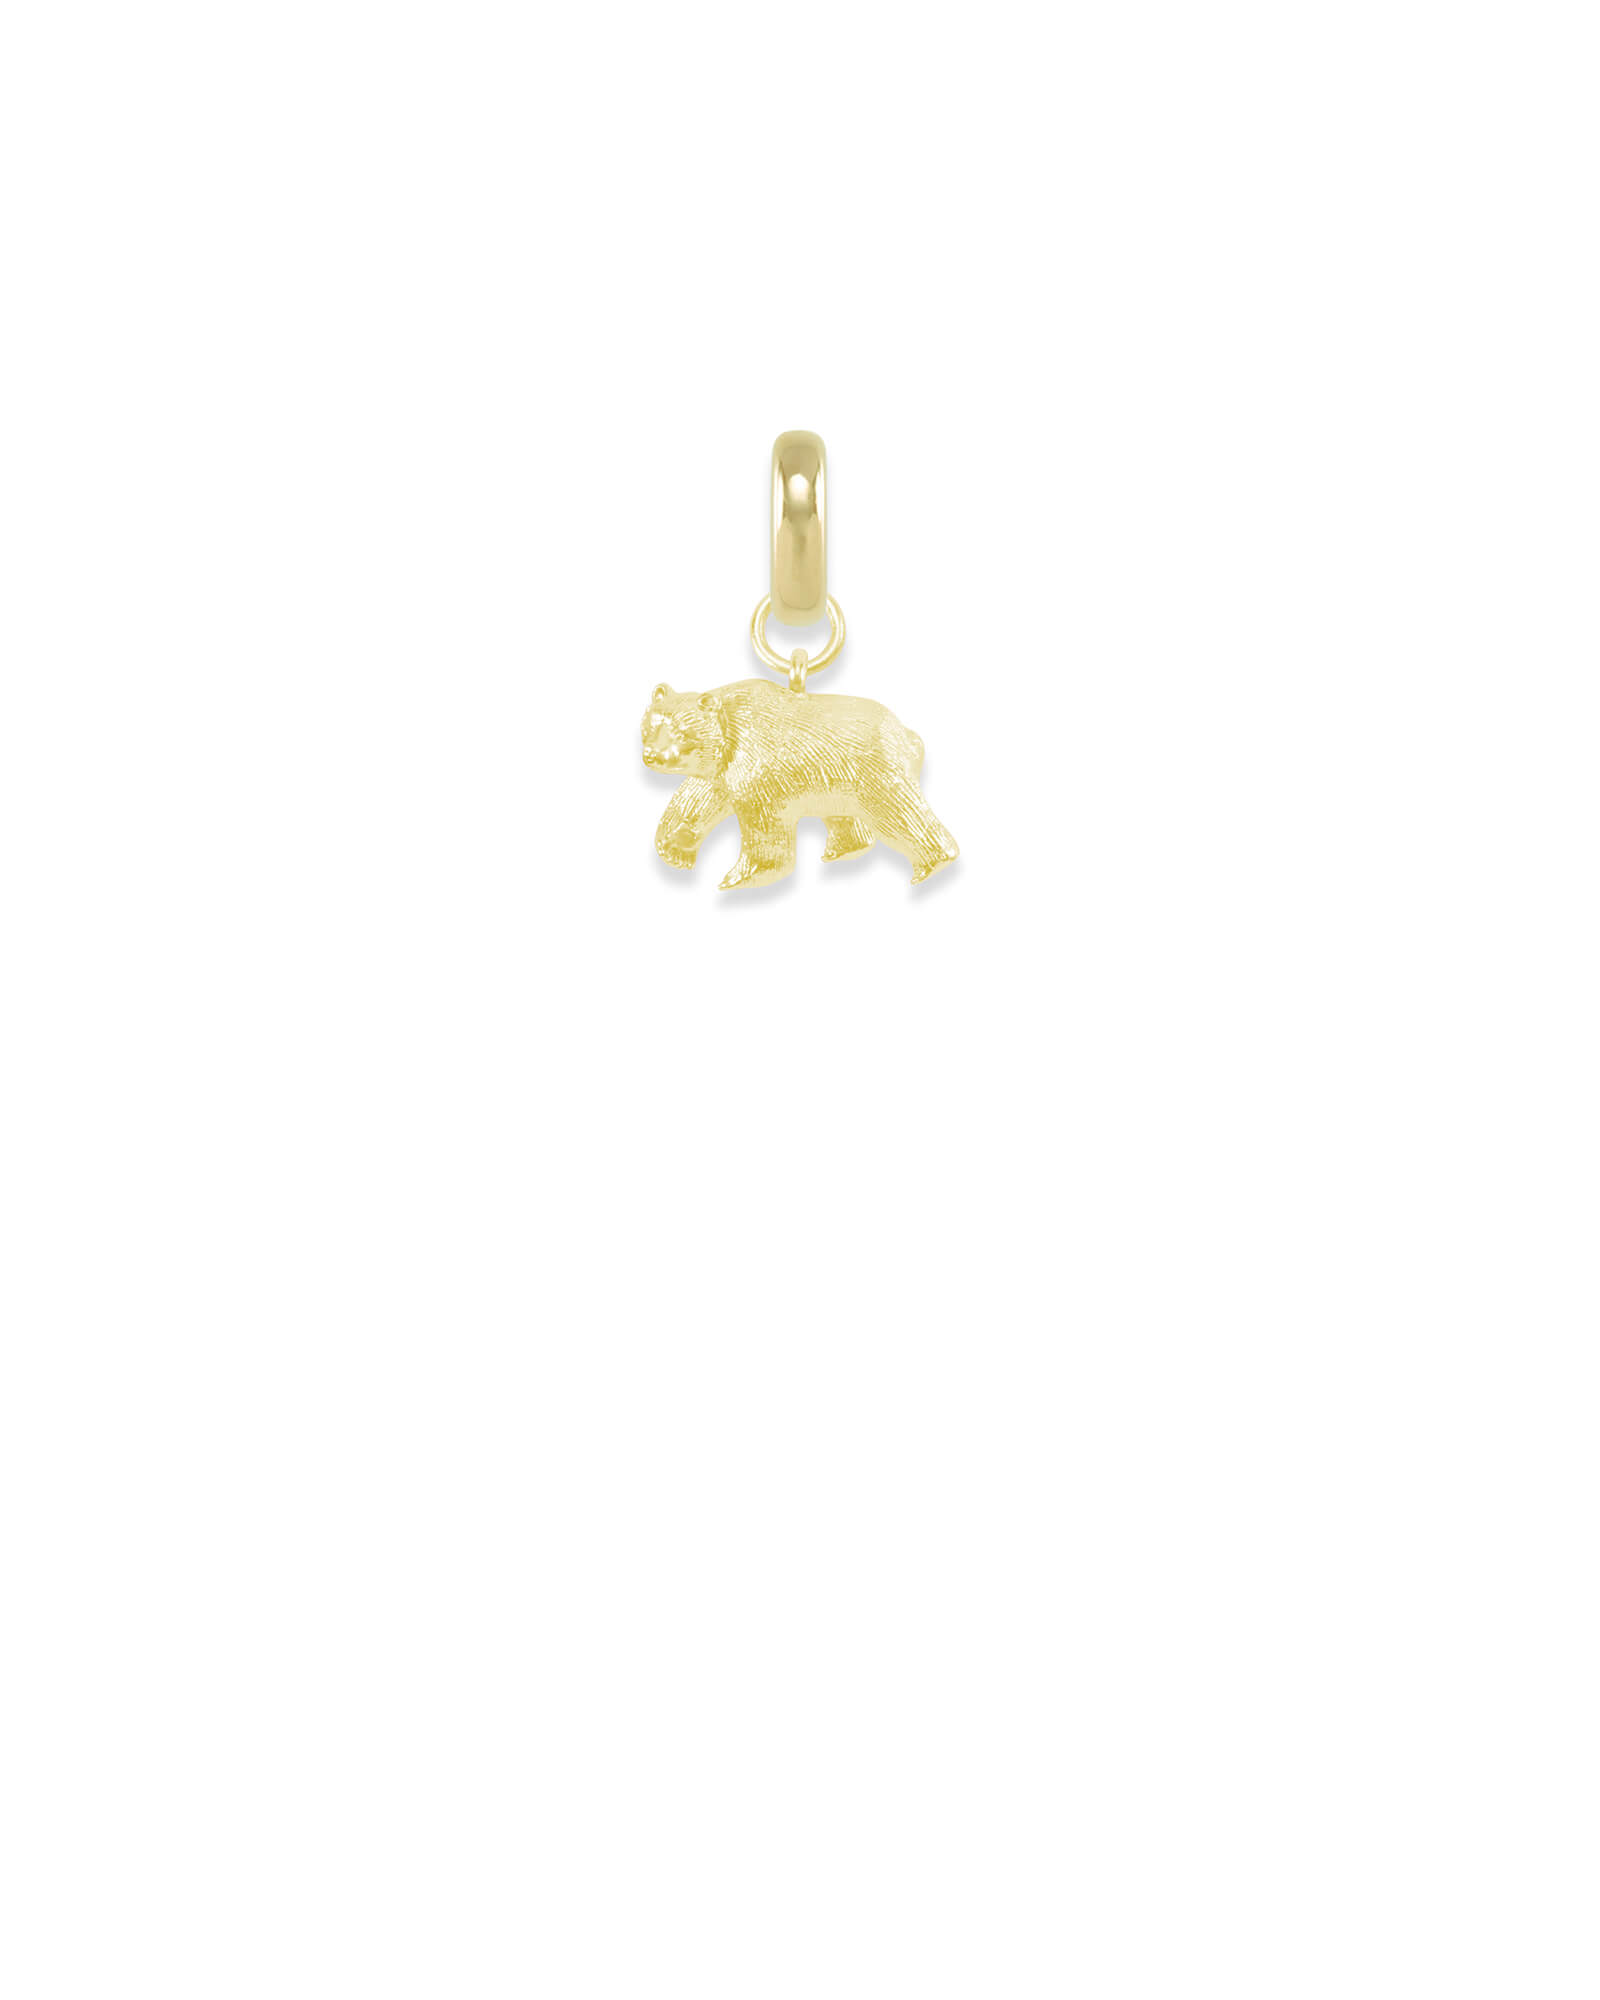 Colorado Black Bear Charm in Gold